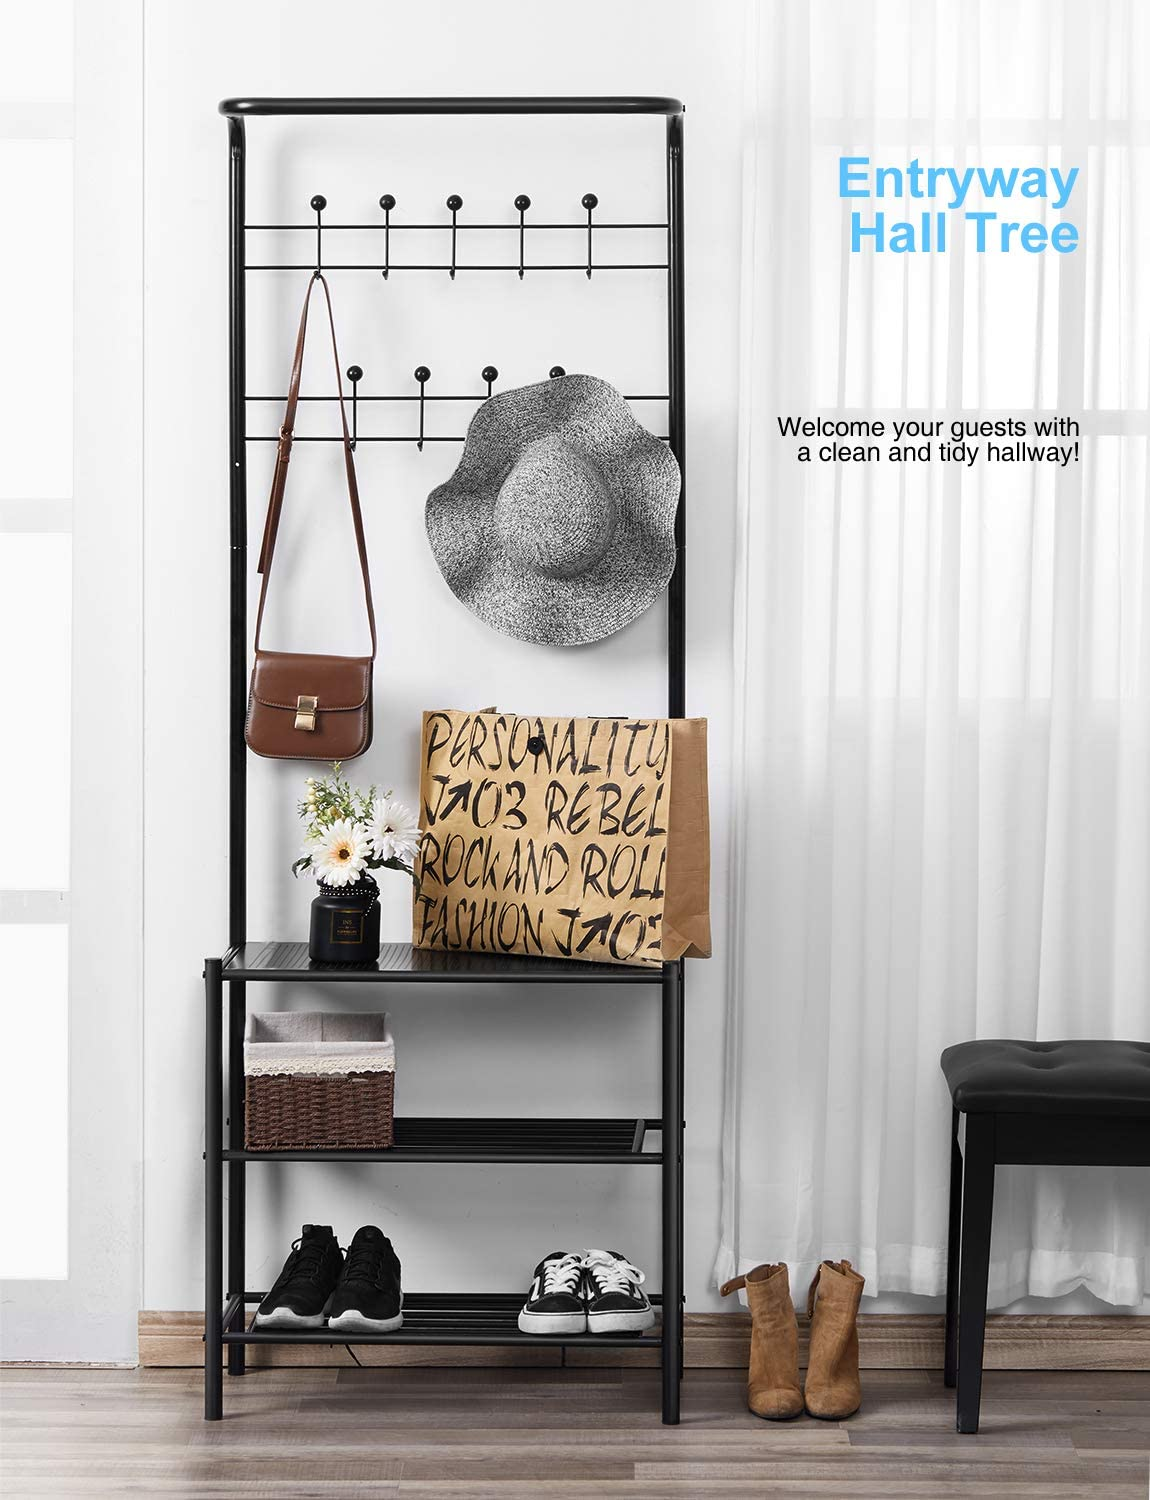 kealive Coat Rack Metal Entryway Hall Tree Freestanding with 9 Rounded Hooks Black Shoe Rack 3-Tier Storage Shelves for Jacket and Coats//Hats//Shoes or Bag Easy Assembly